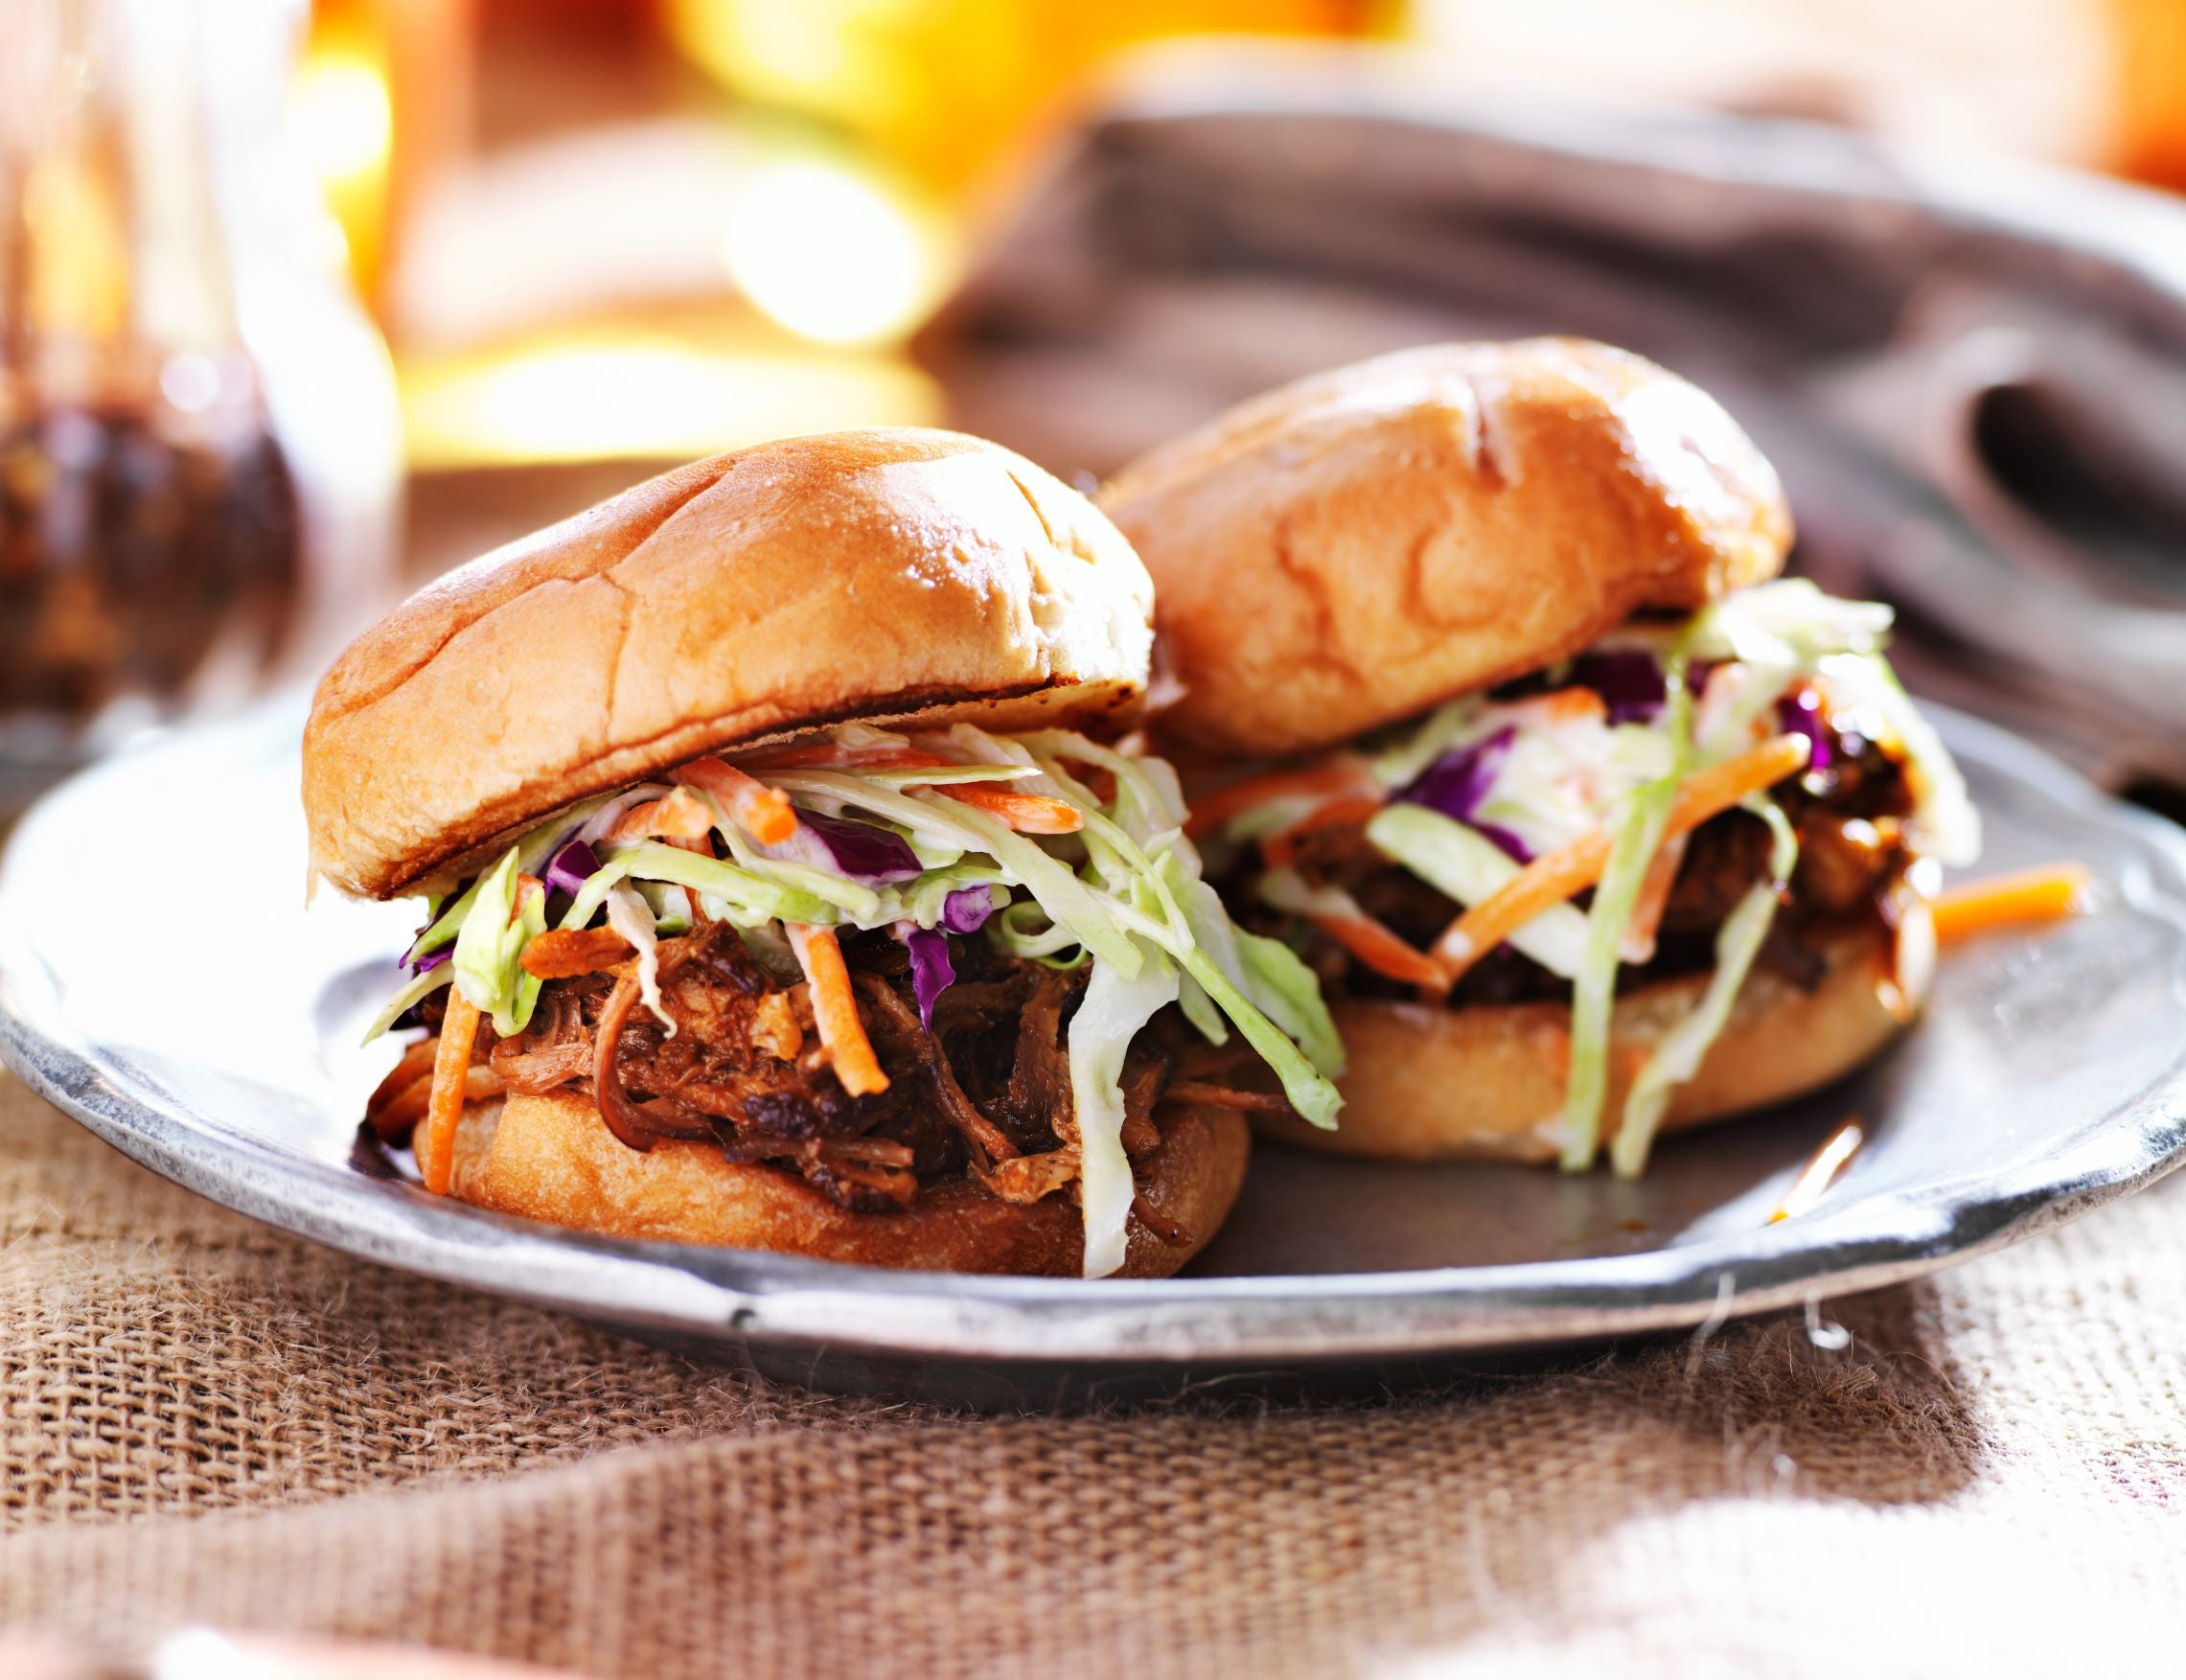 pulled pork sandwiches on a plate